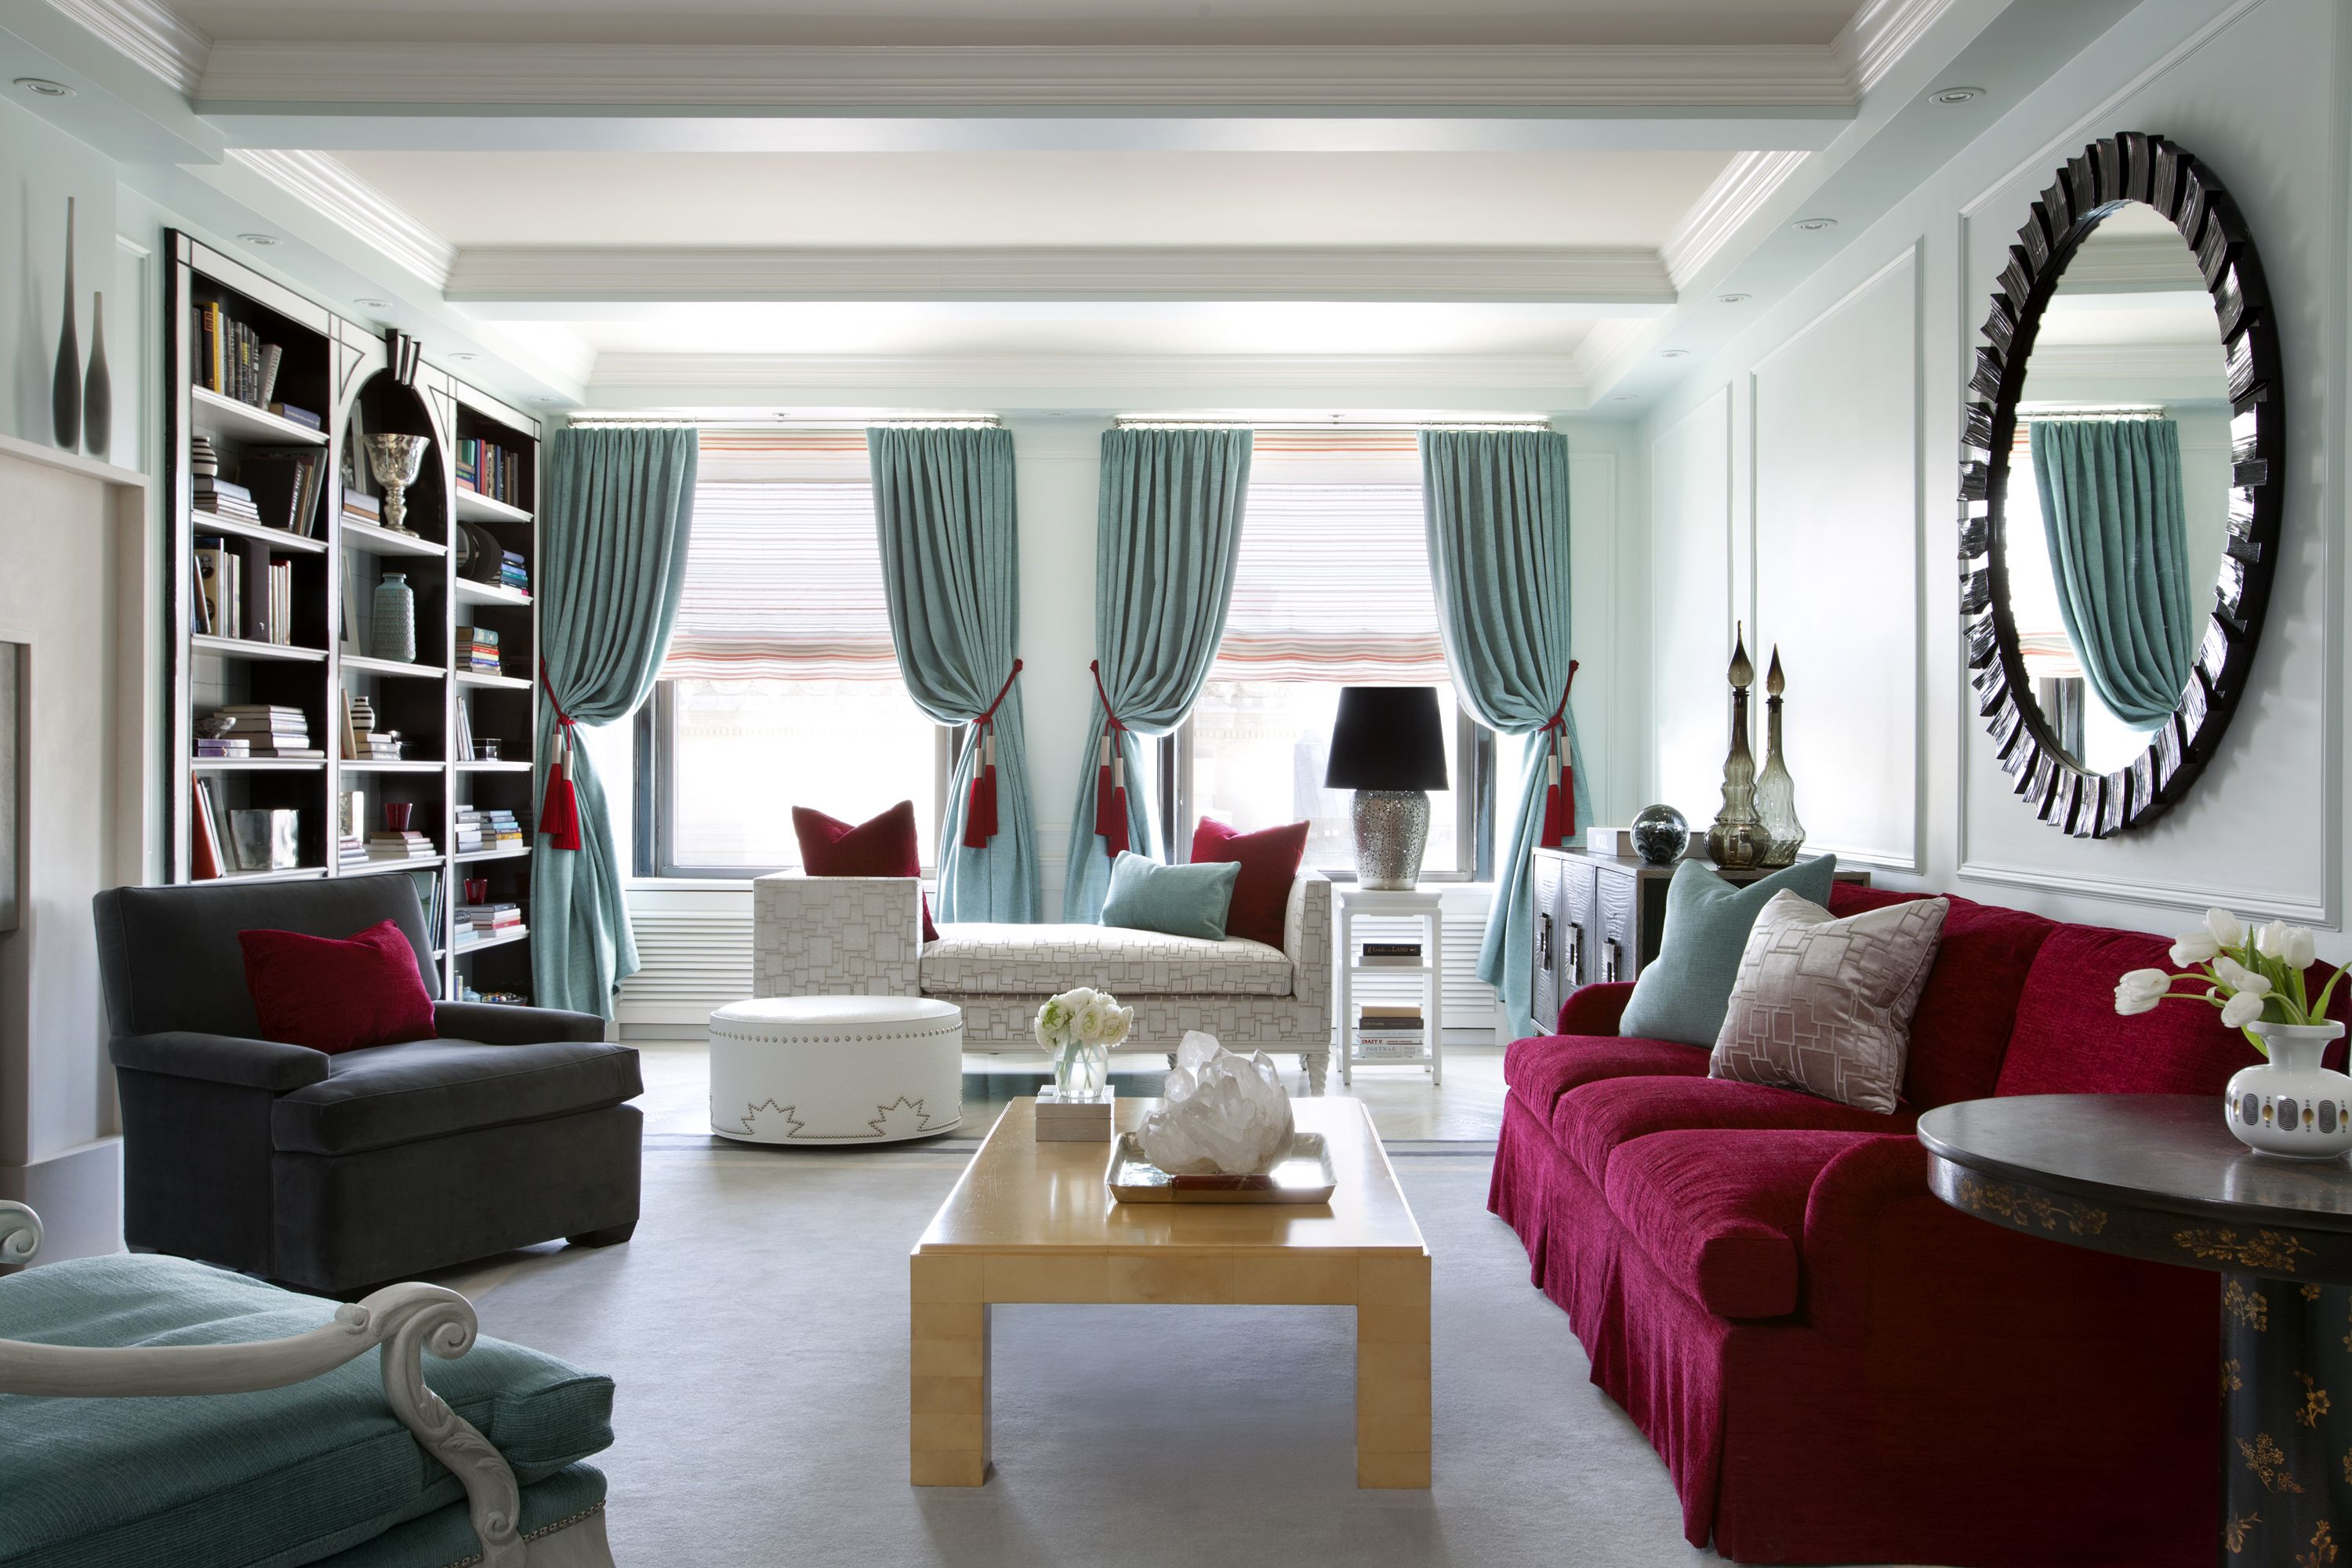 Living Room Seating - home decor photos gallery